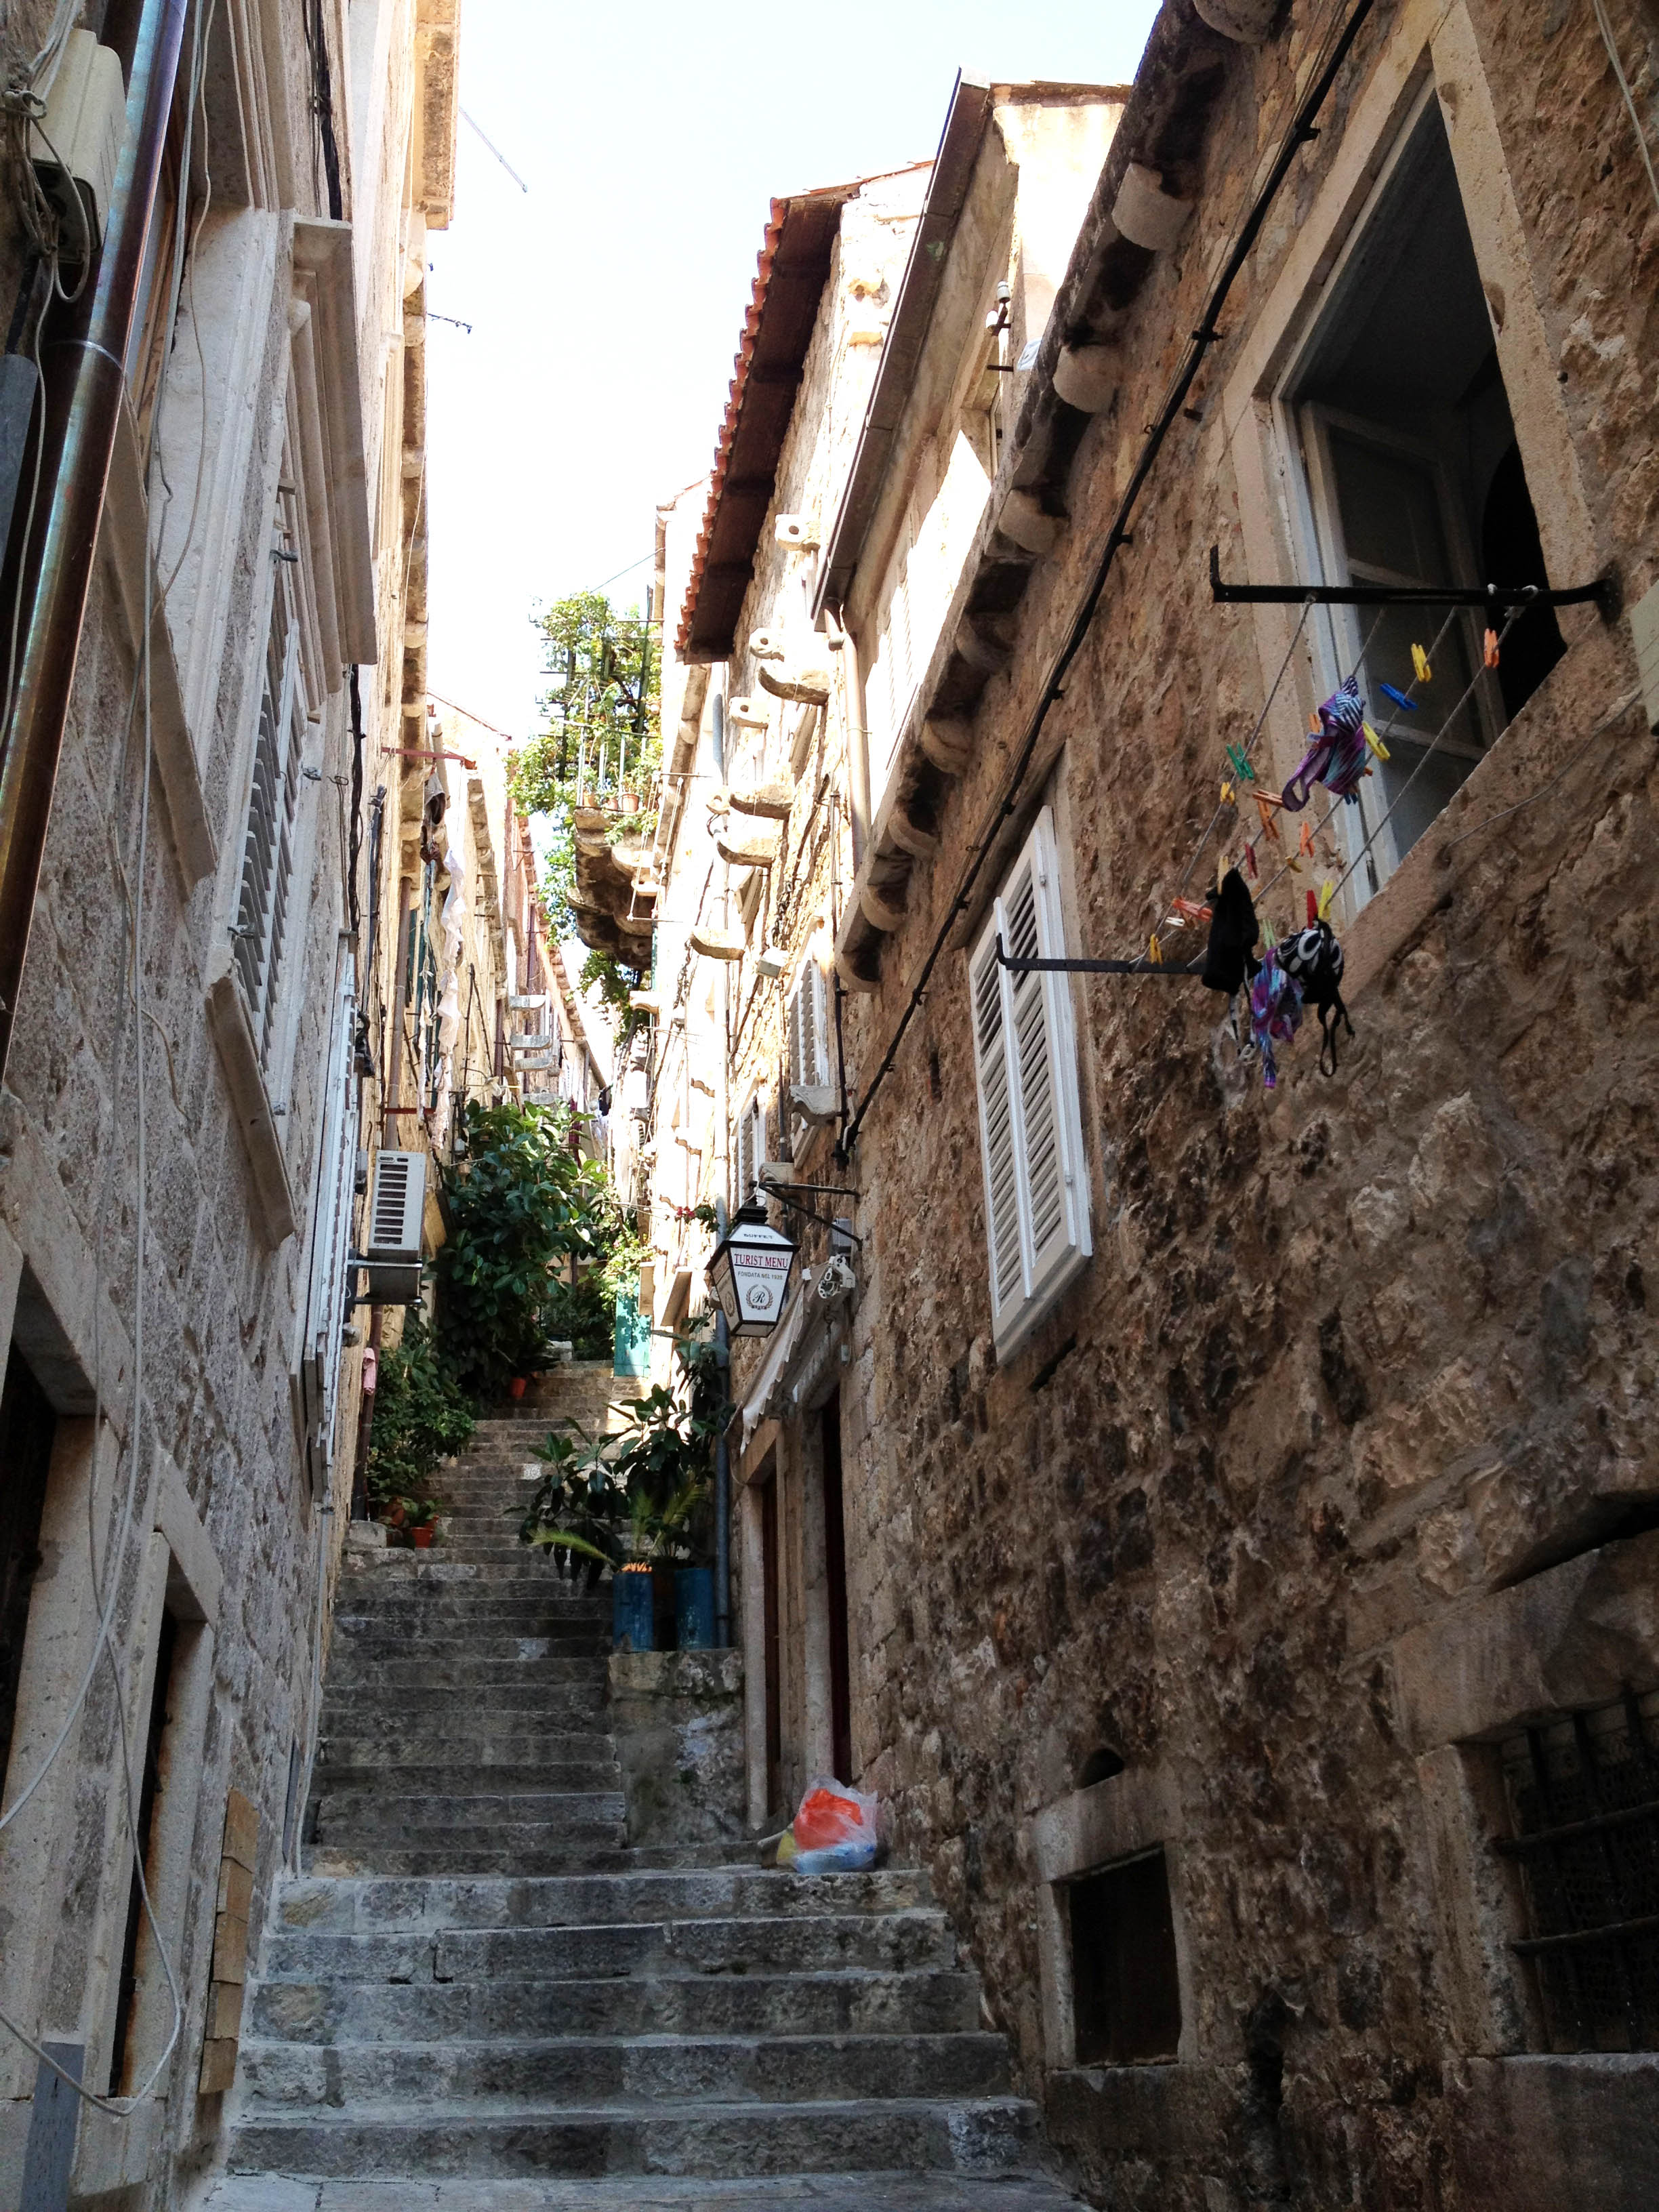 Narrow streets with steps for the hilly topography